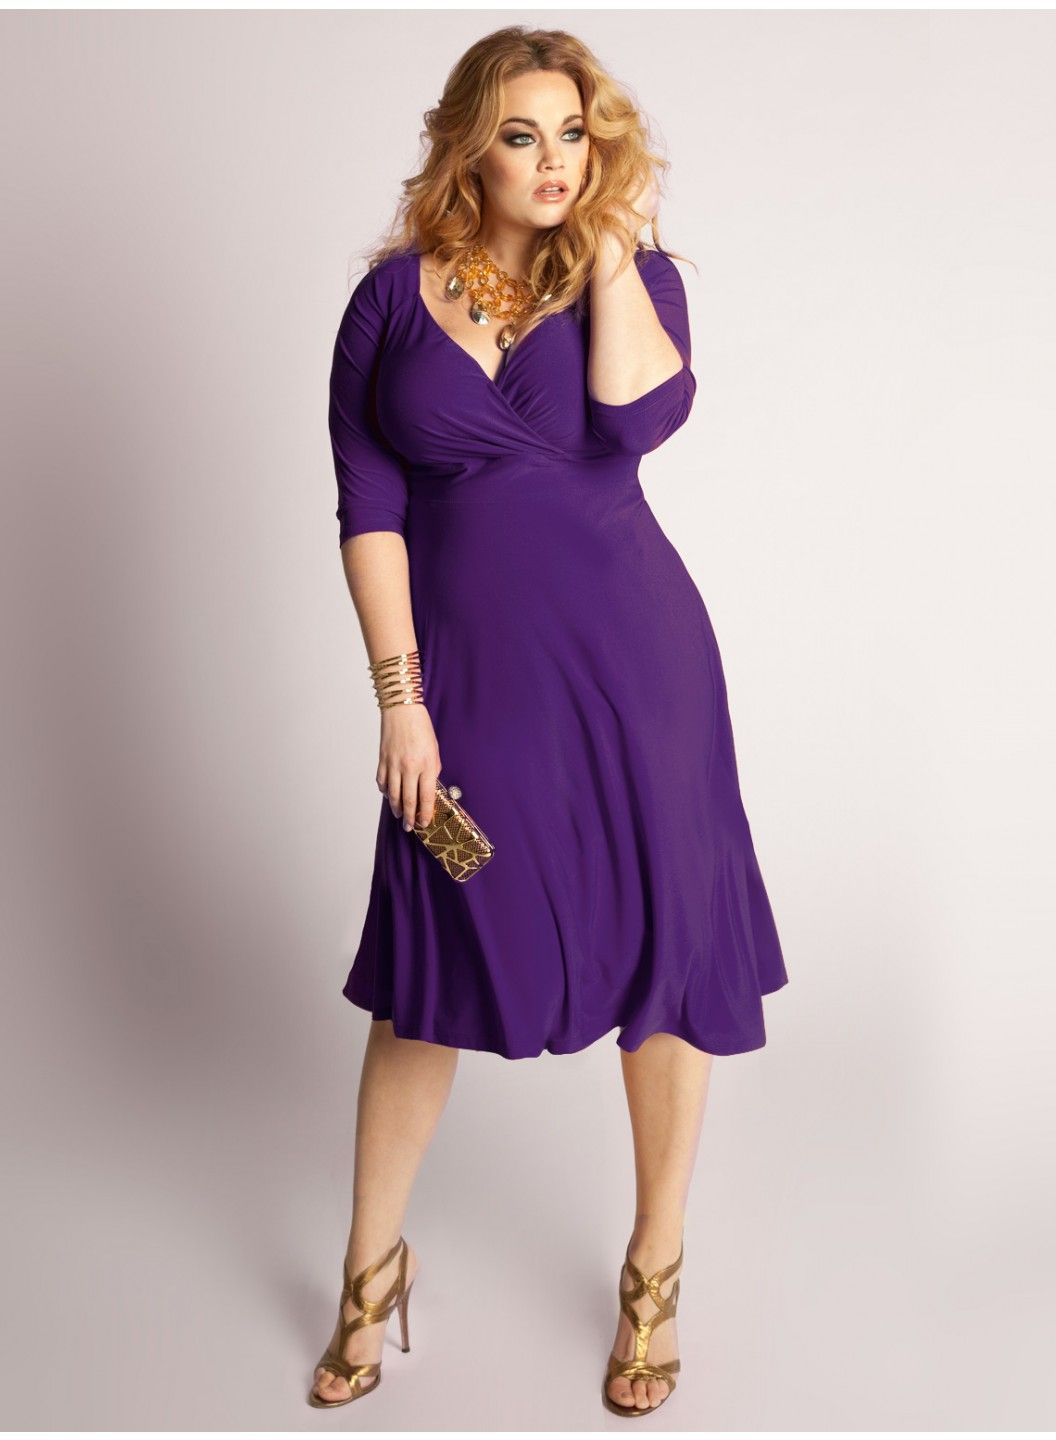 Purple cocktail dress size 14